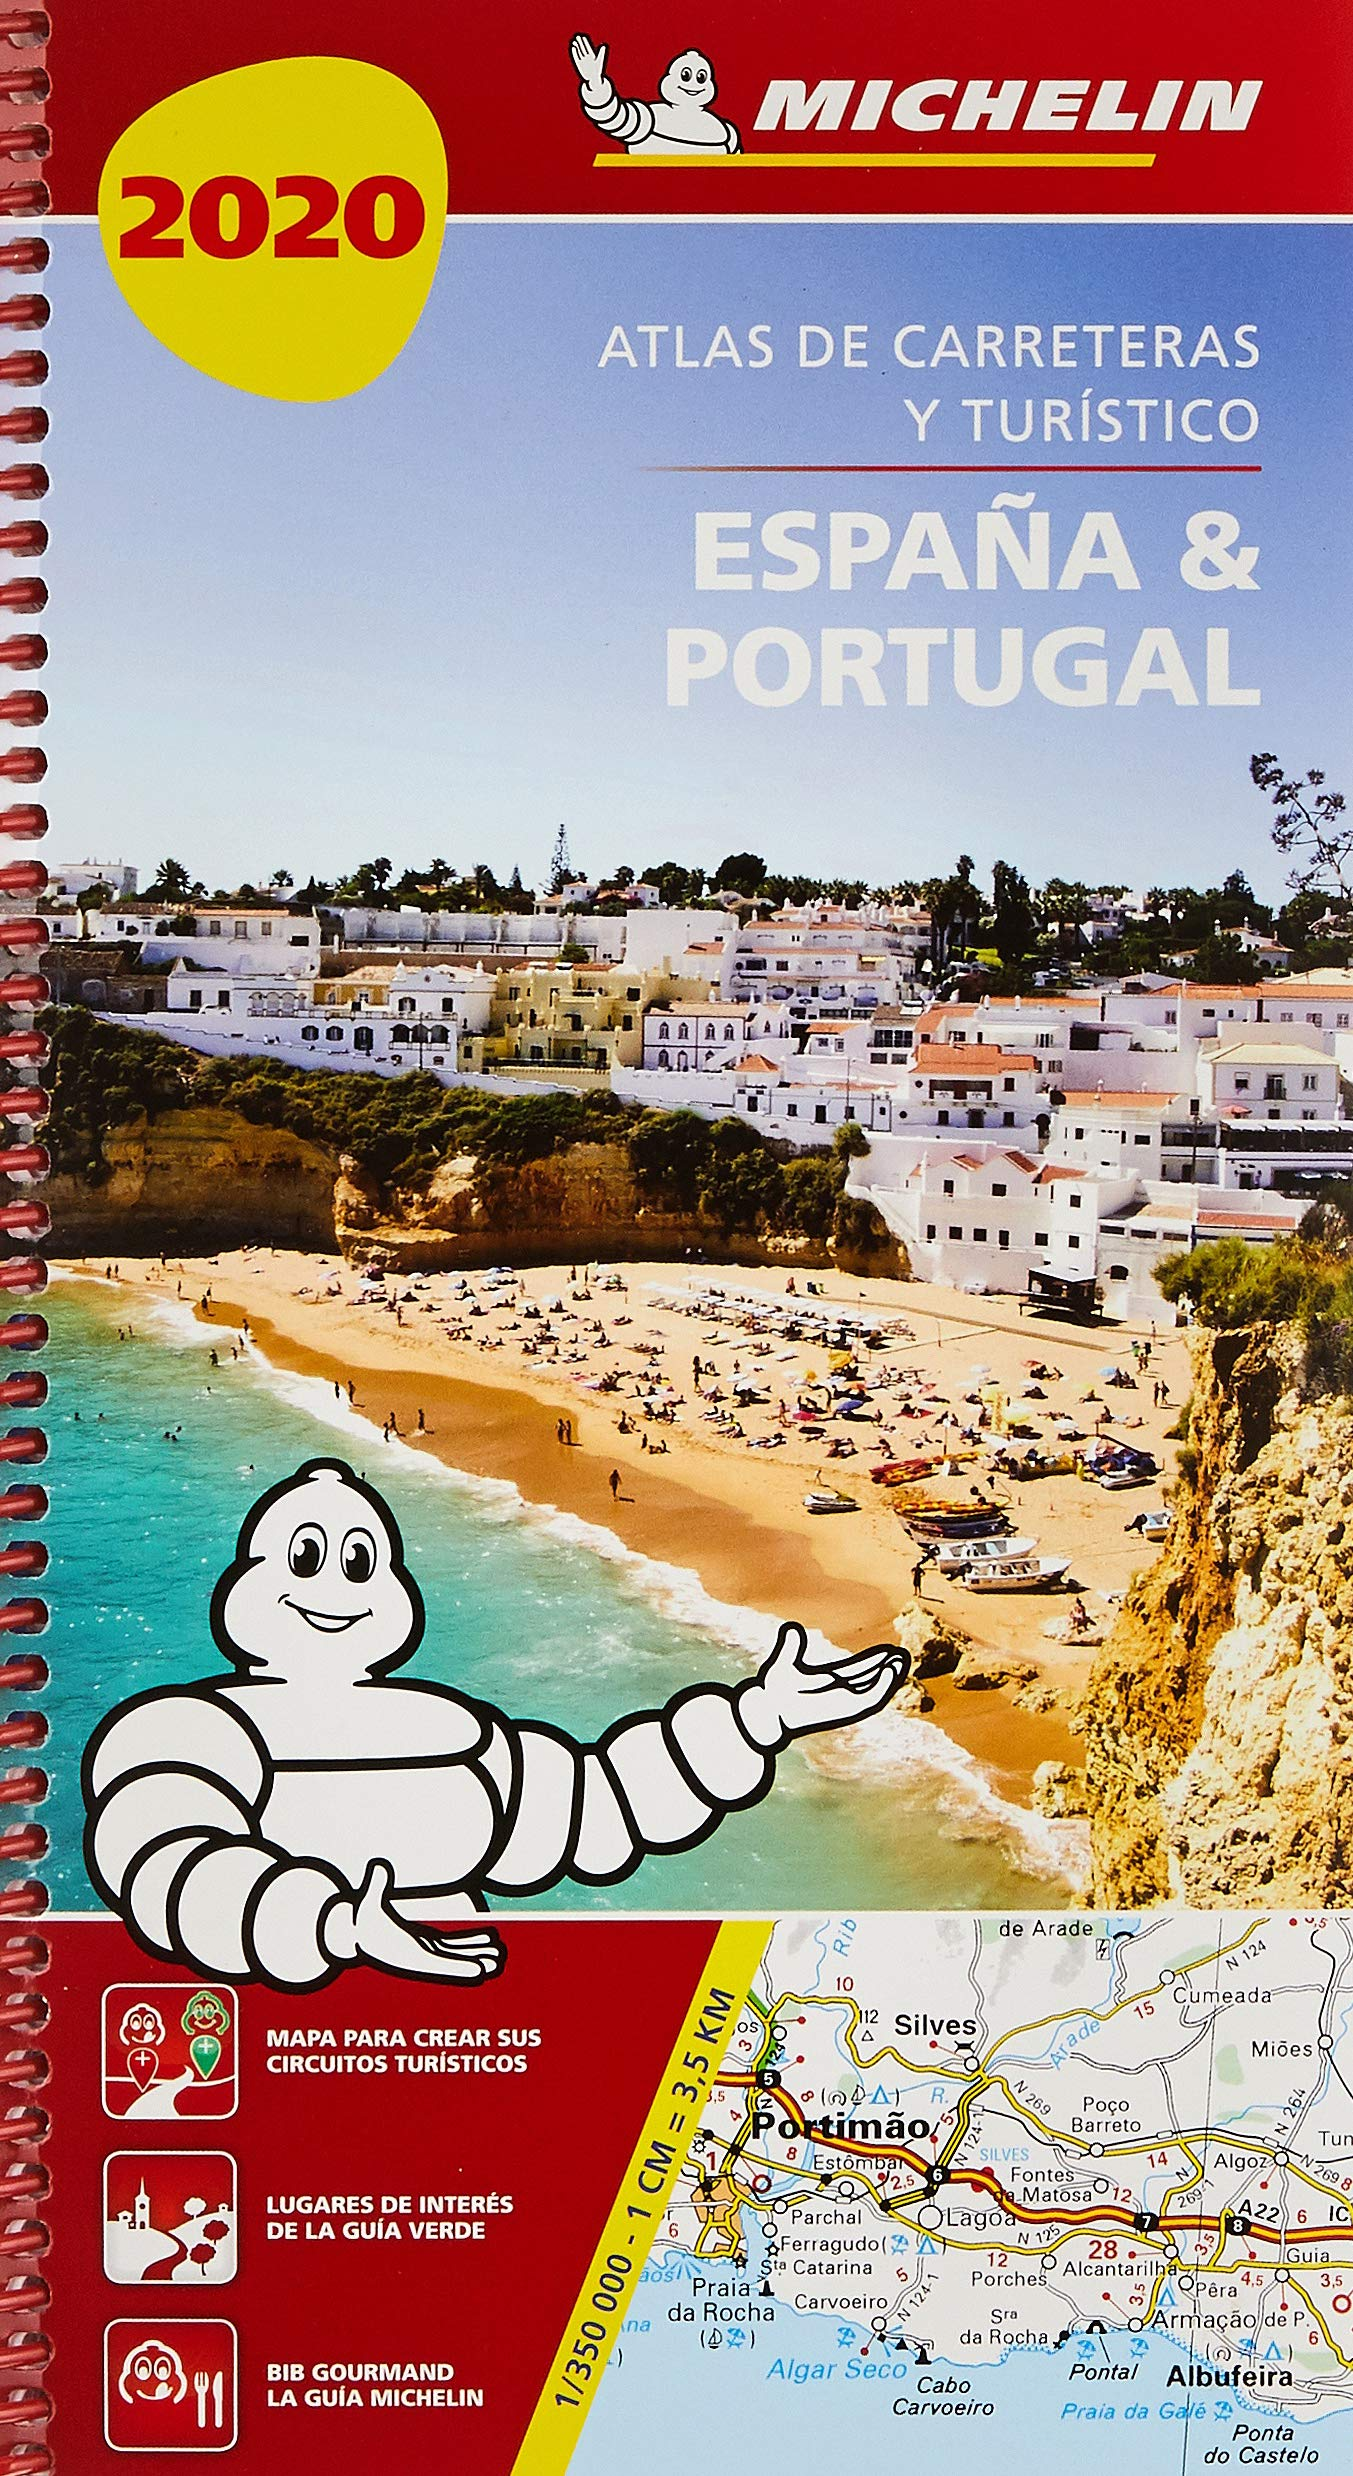 España & Portugal 2020 Atlas de carreteras y turístico Atlas de carreteras Michelin: Amazon.es: MICHELIN: Libros